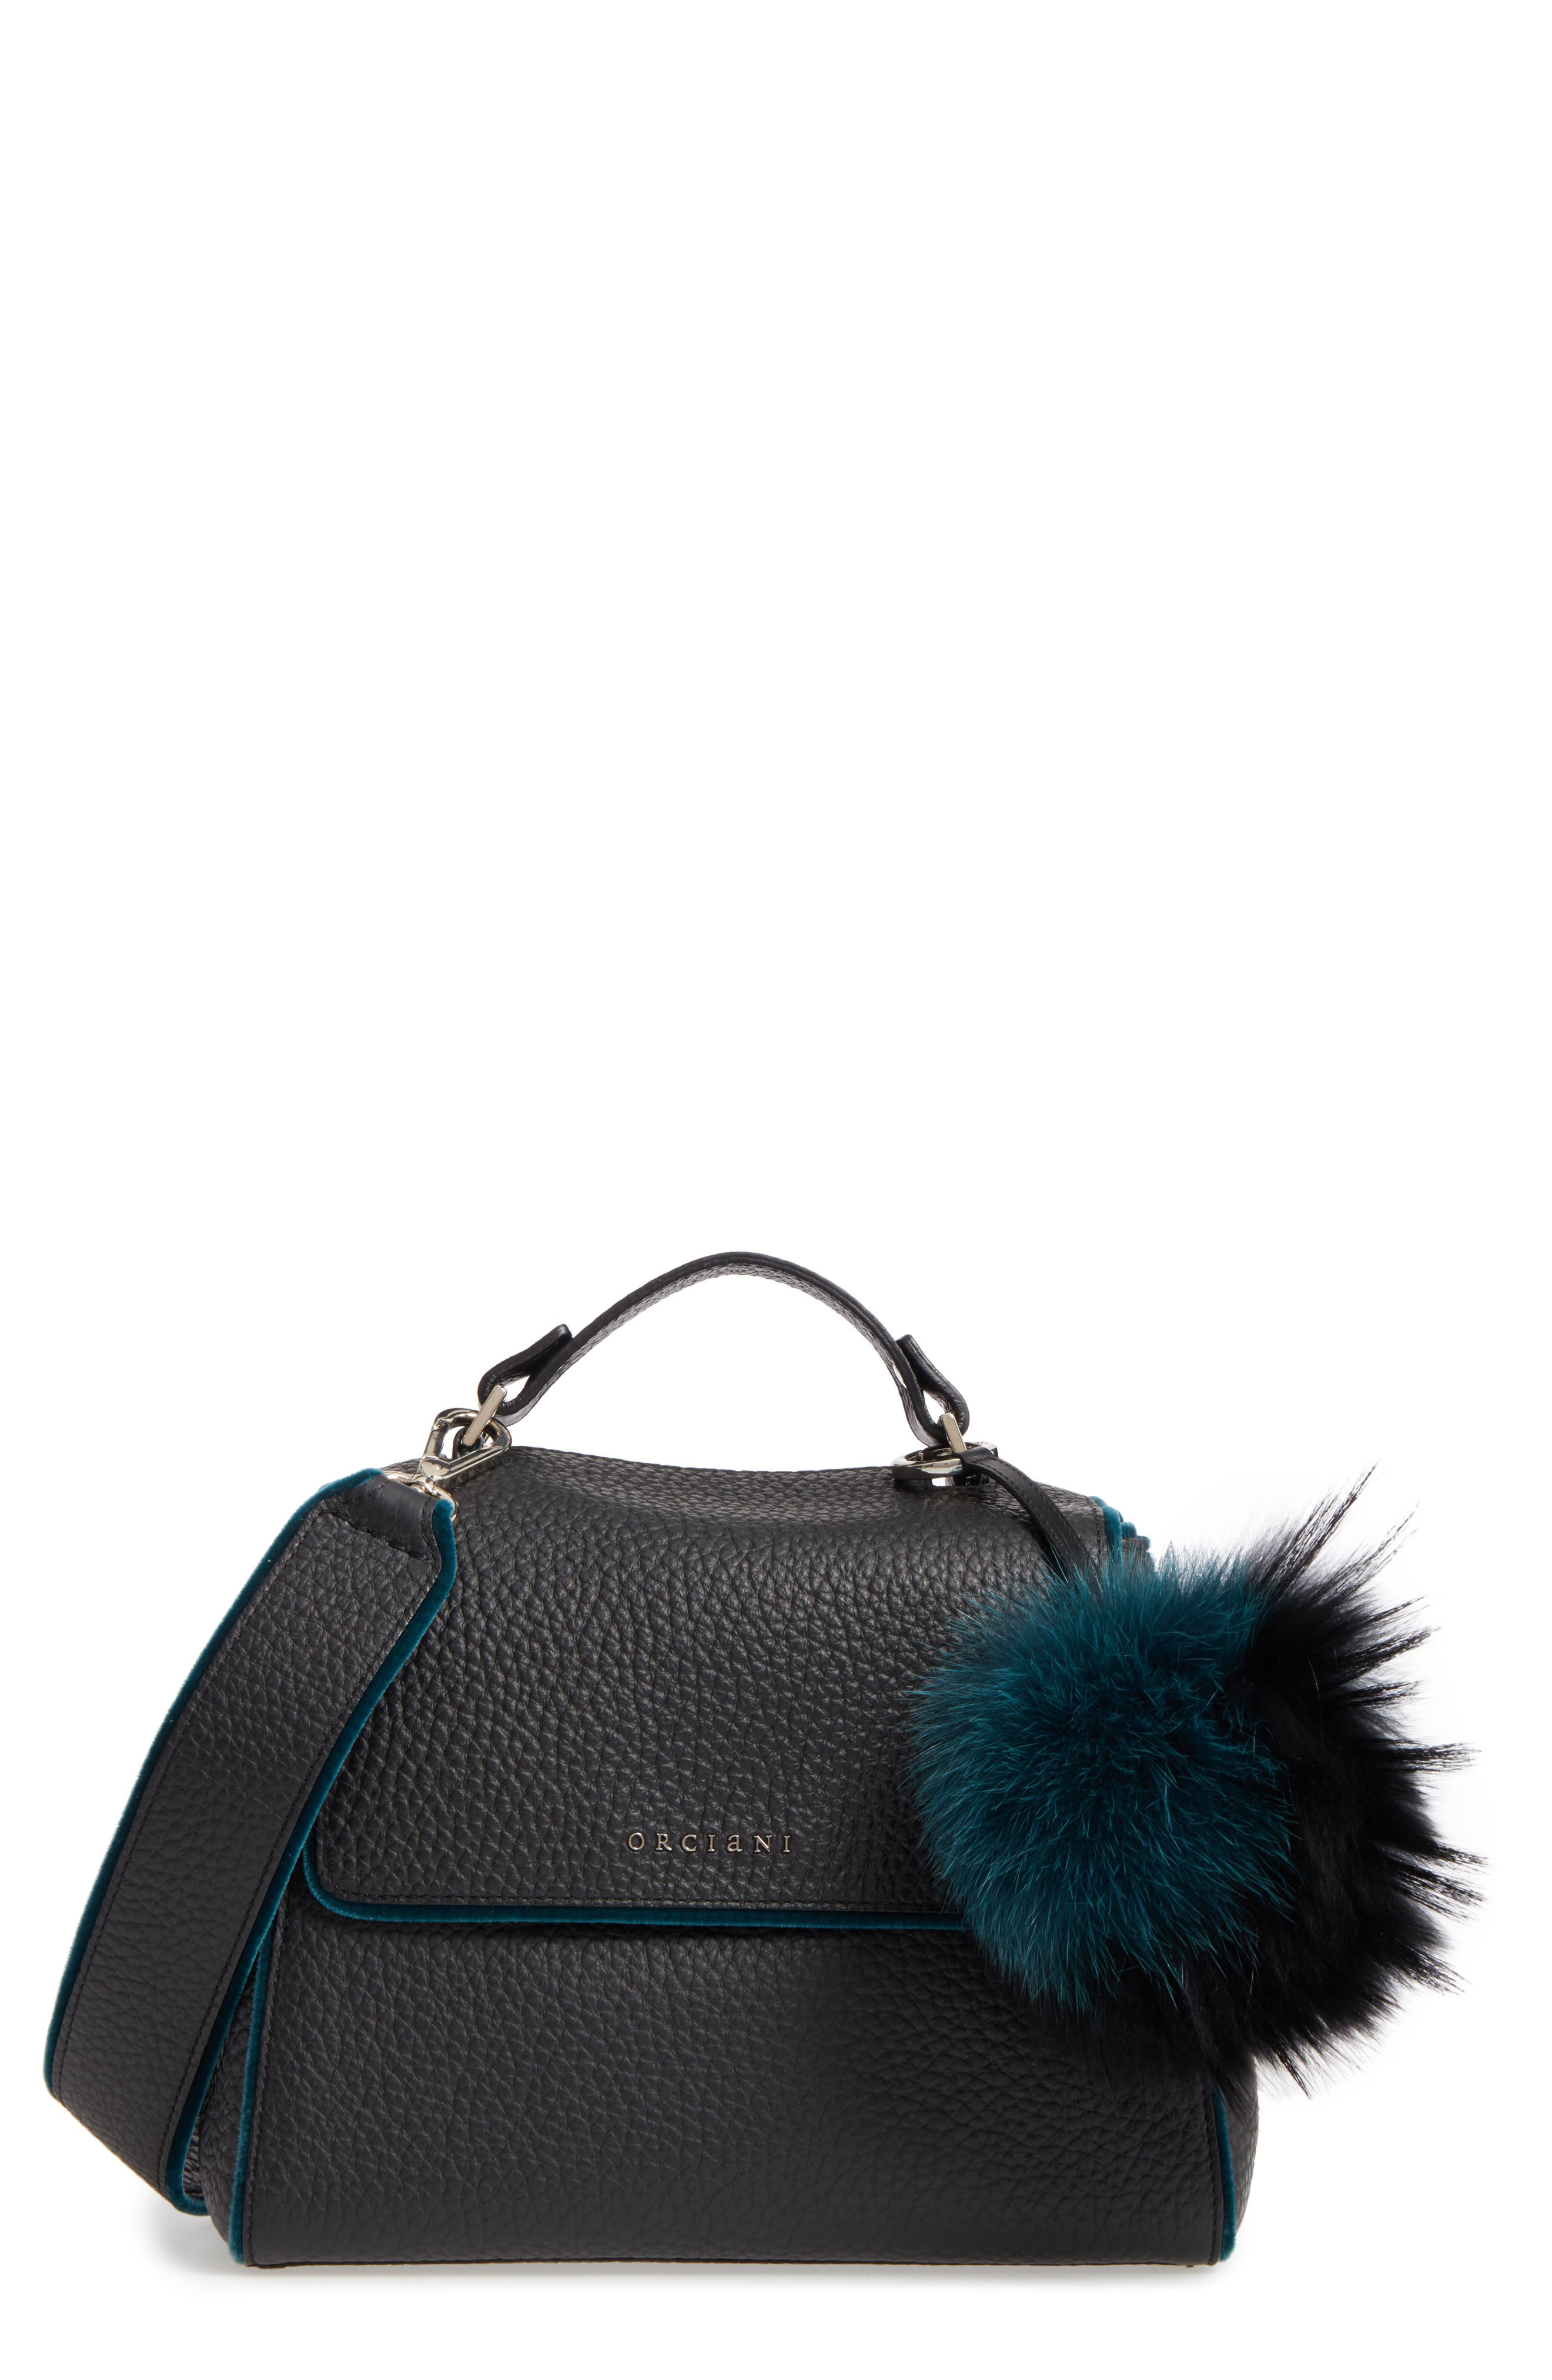 Main Image - Orciani Small Sveva Soft Leather Top Handle Satchel with Genuine Fur Bag Charm